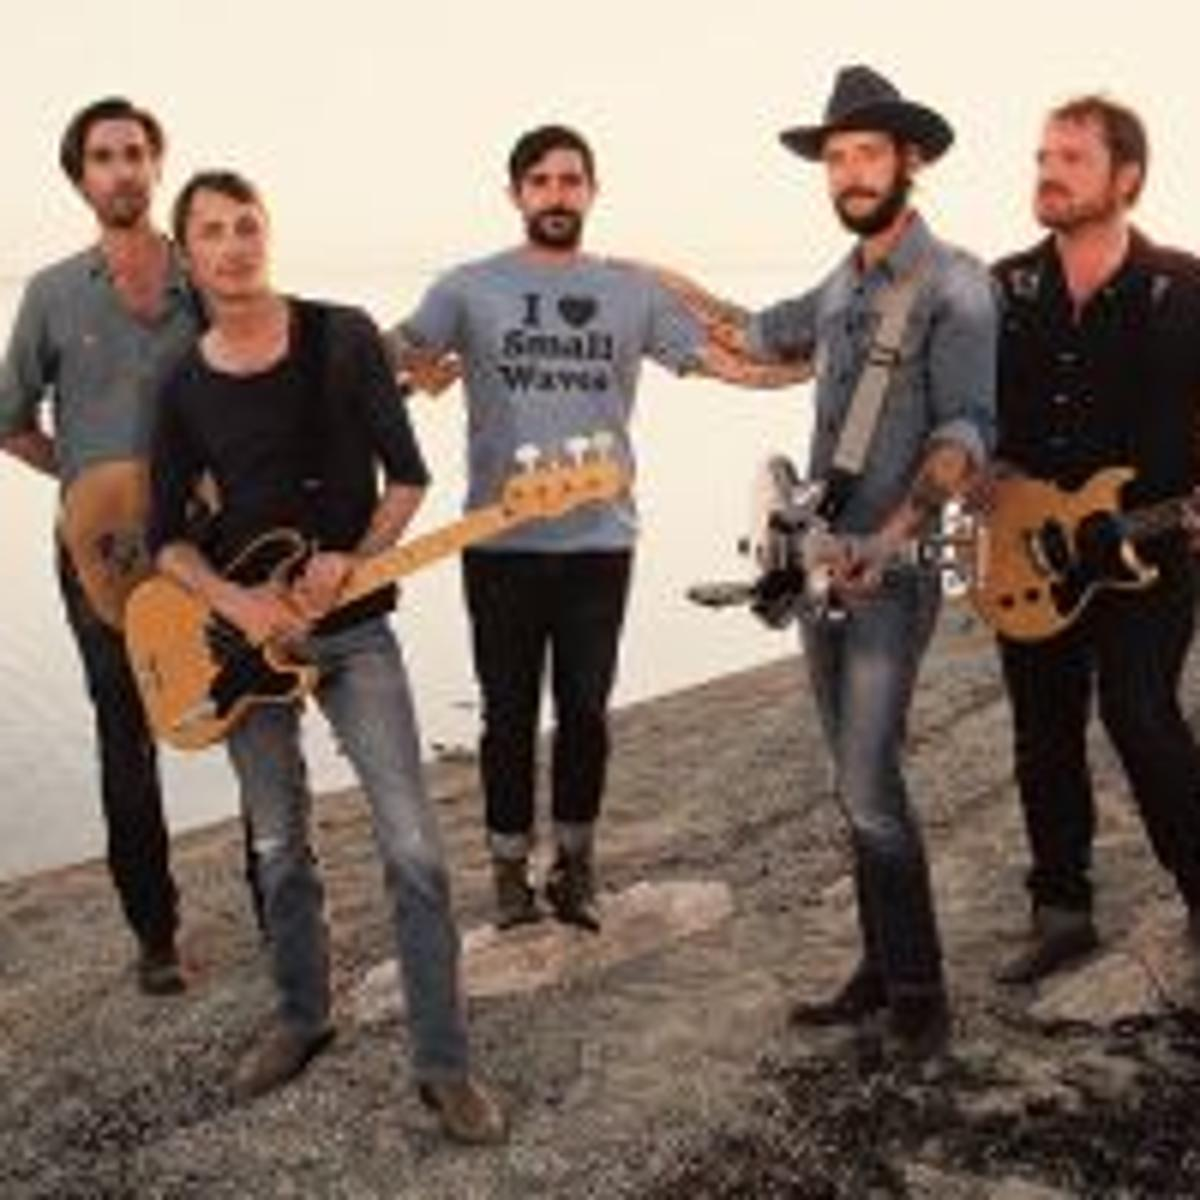 Alt-country rockers Band of Horses' Monterey stop comes